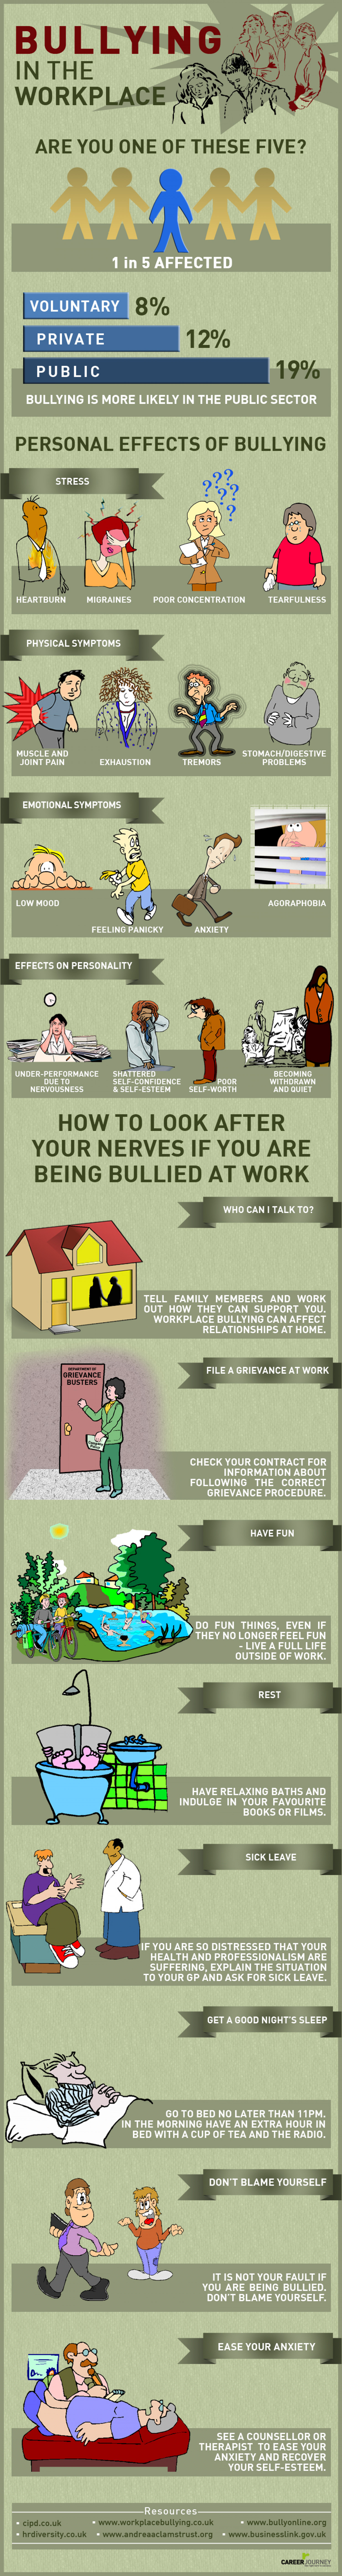 Bullying in the Workplace Infographic